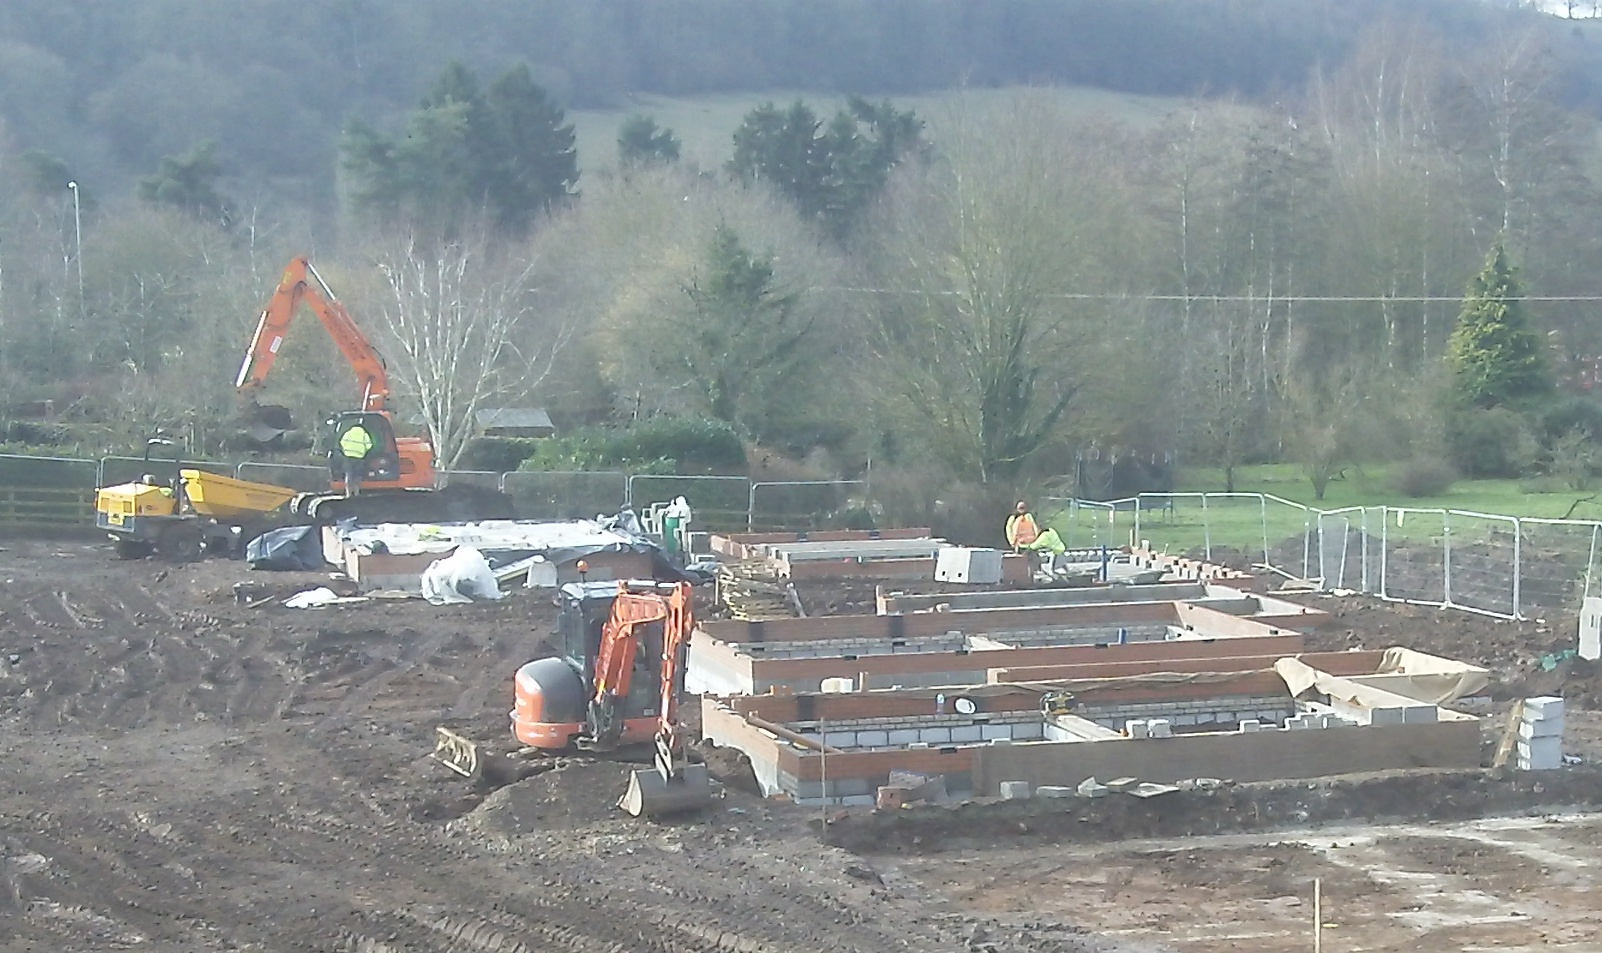 DBA Homes Morville Update - Site progress looking good!